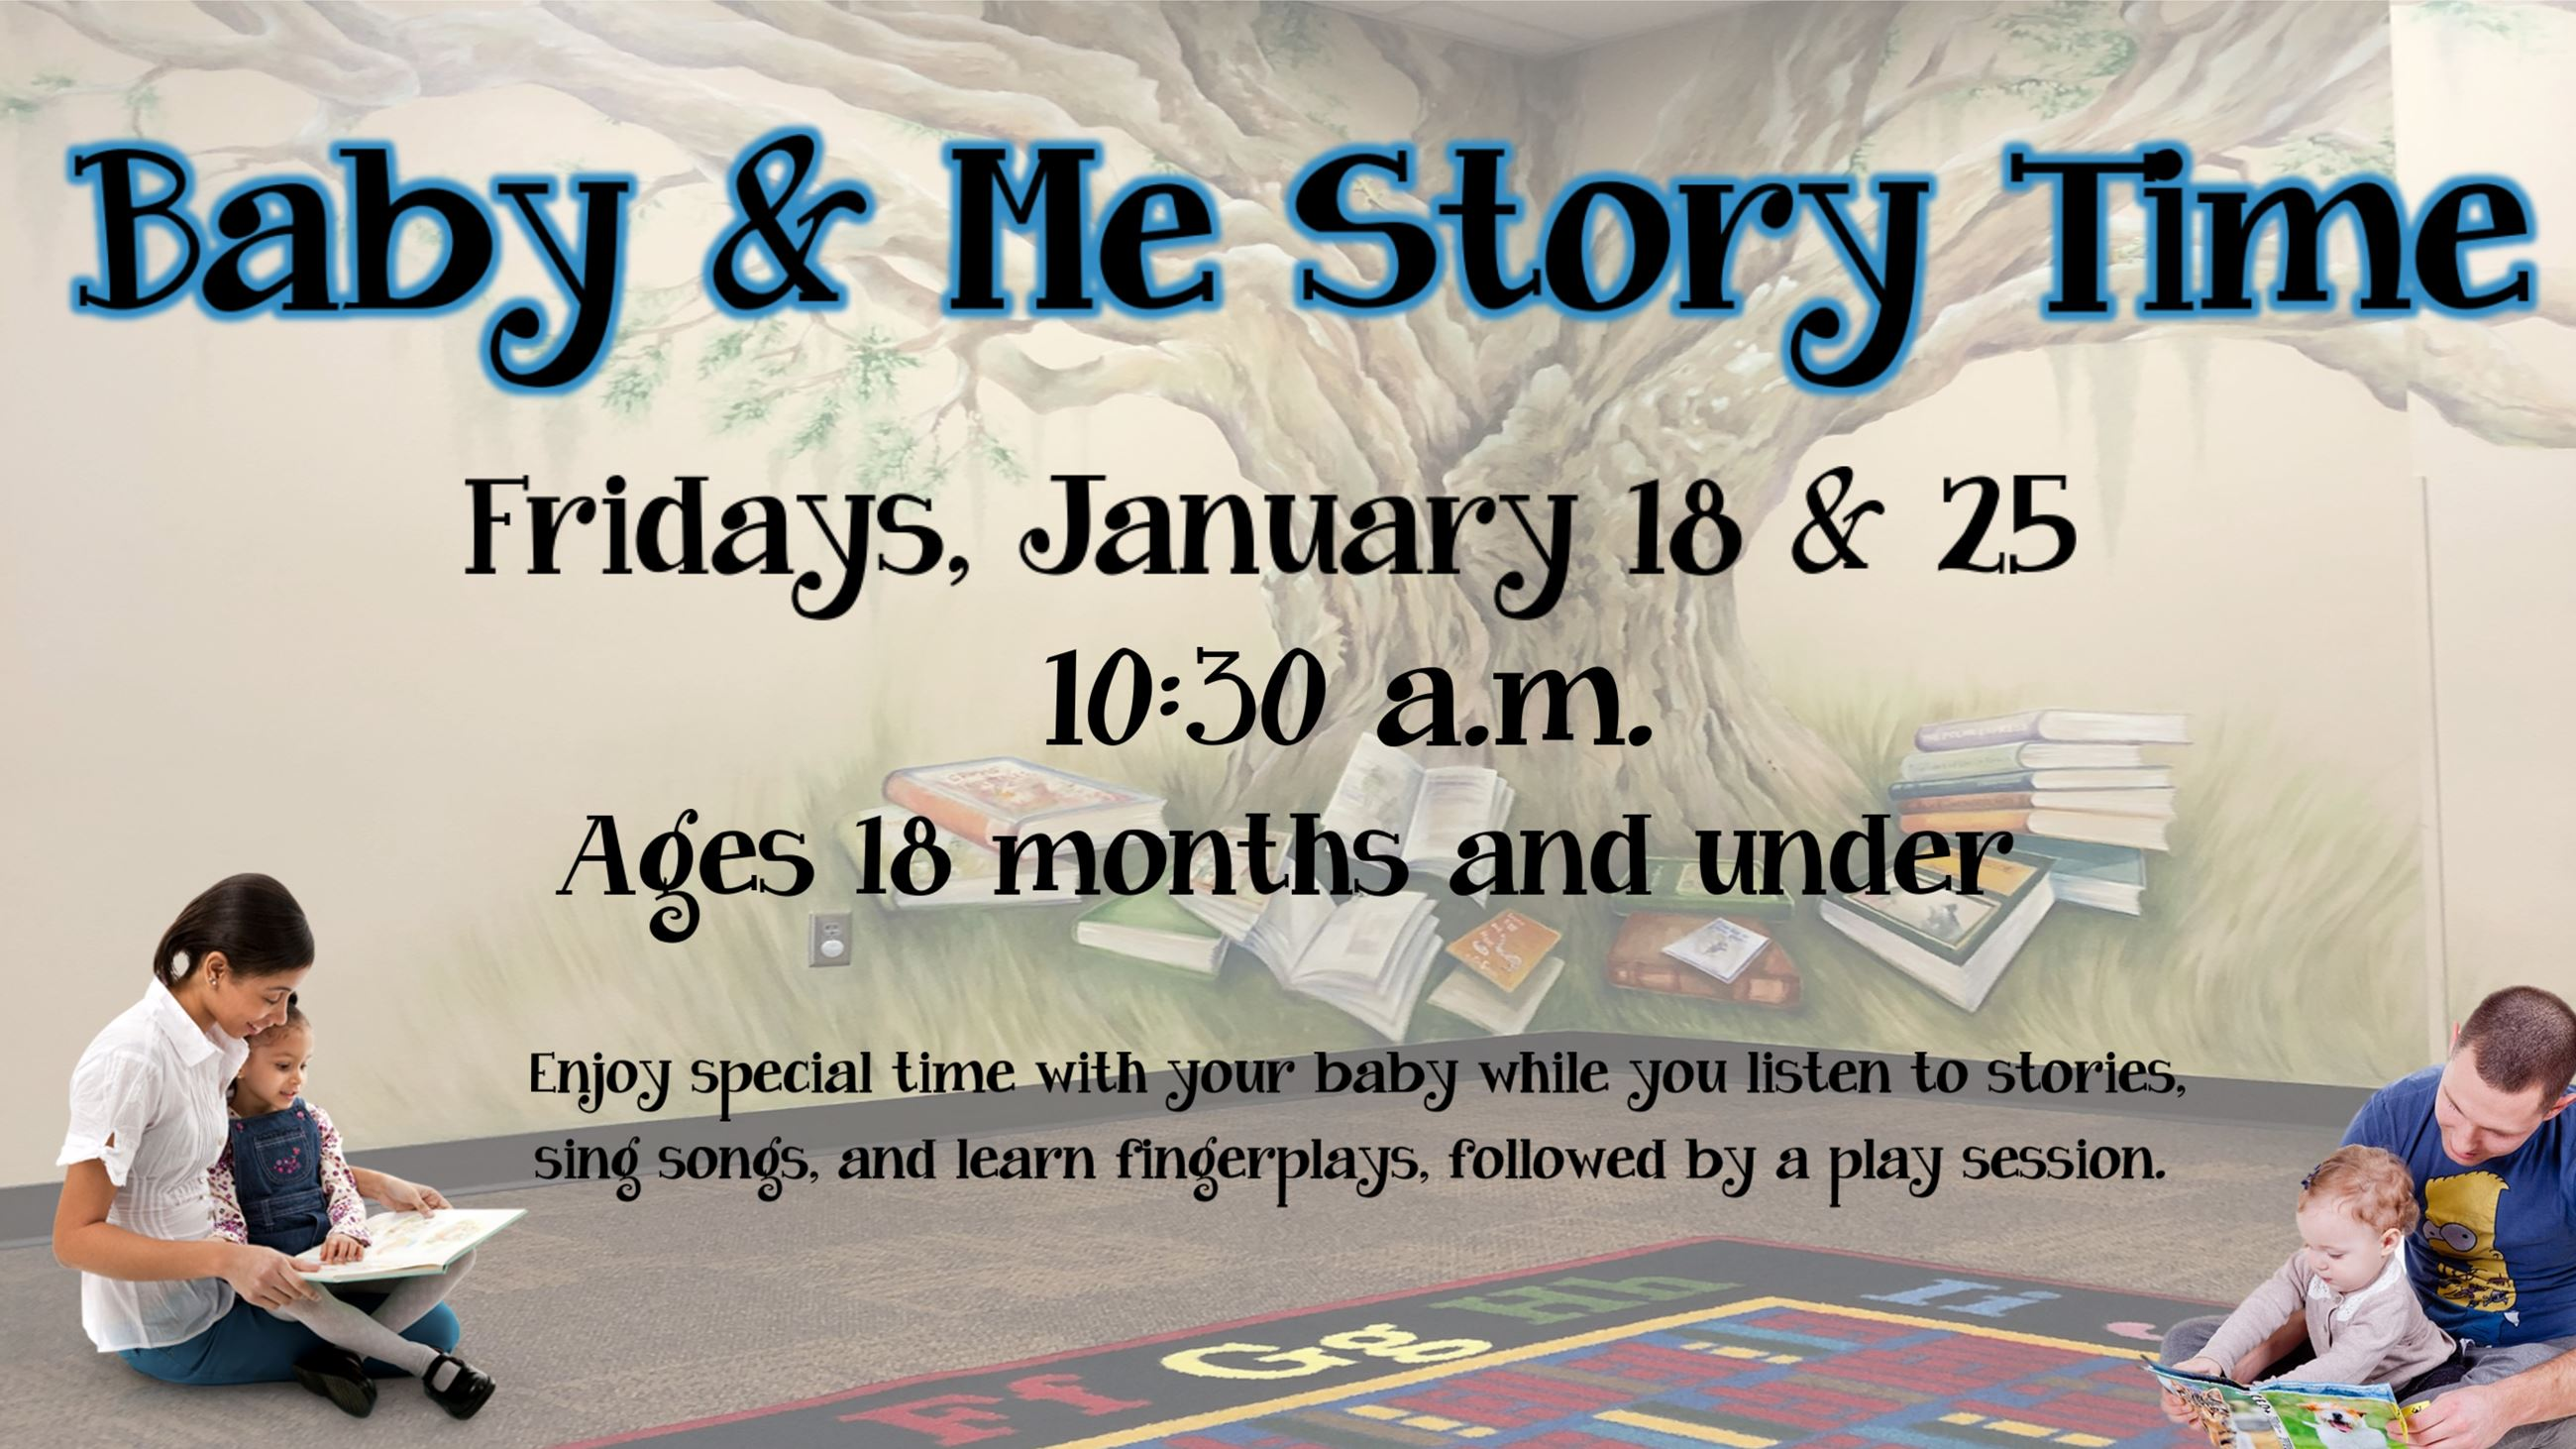 Baby and Me Story Time. January 18 & 25. 10:30 a.m. Ages 18 months & under.